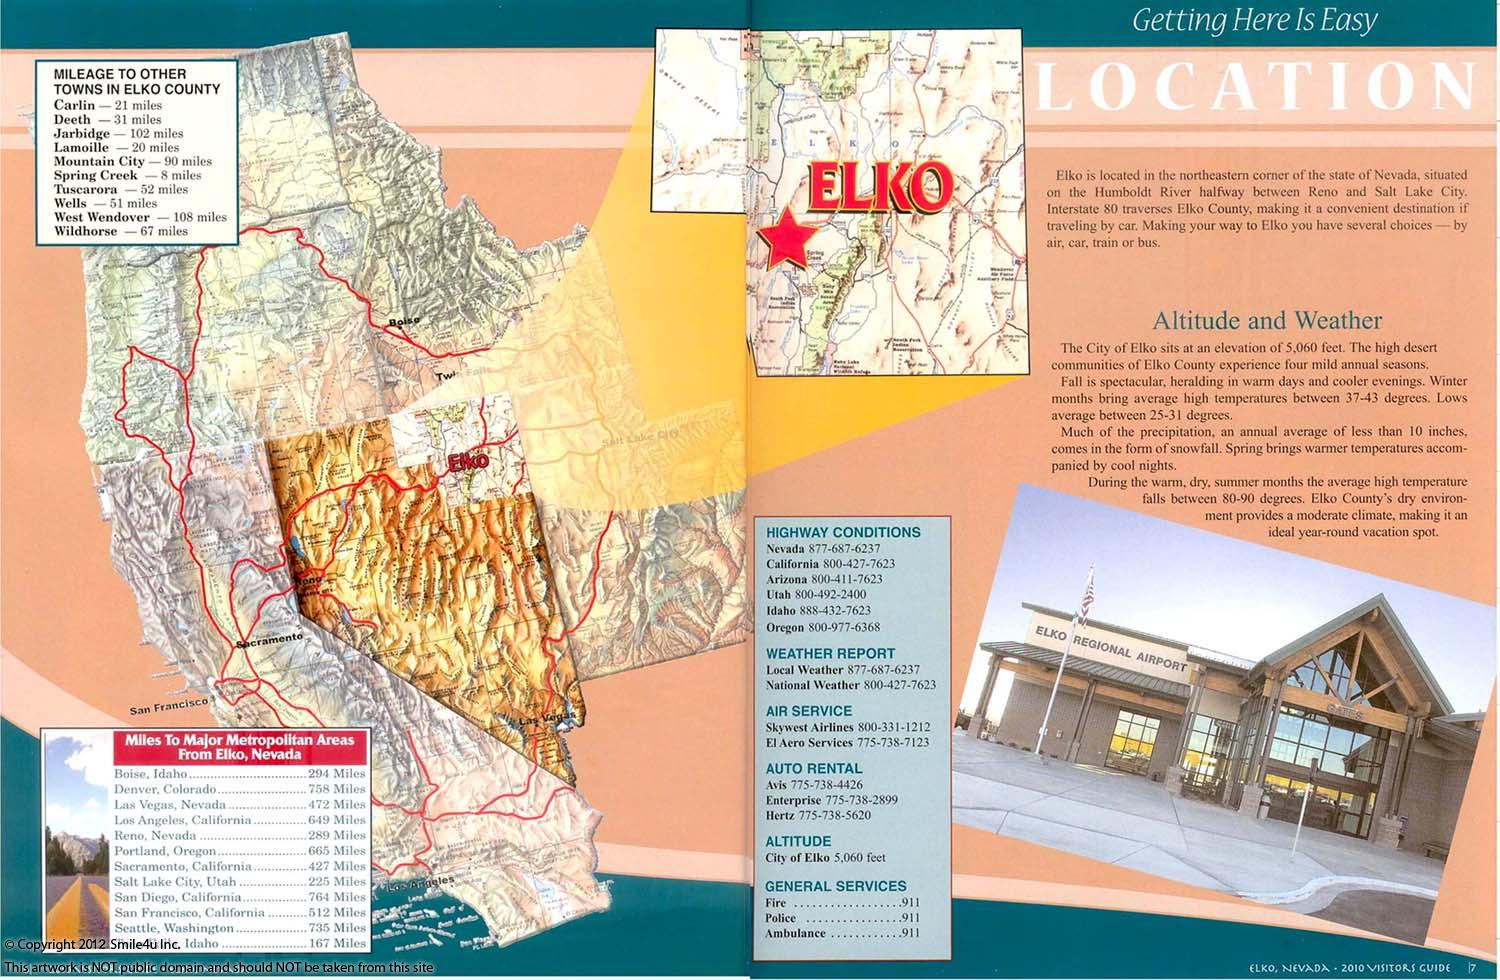 374877_watermarked_Elko Area Map and Information.jpg